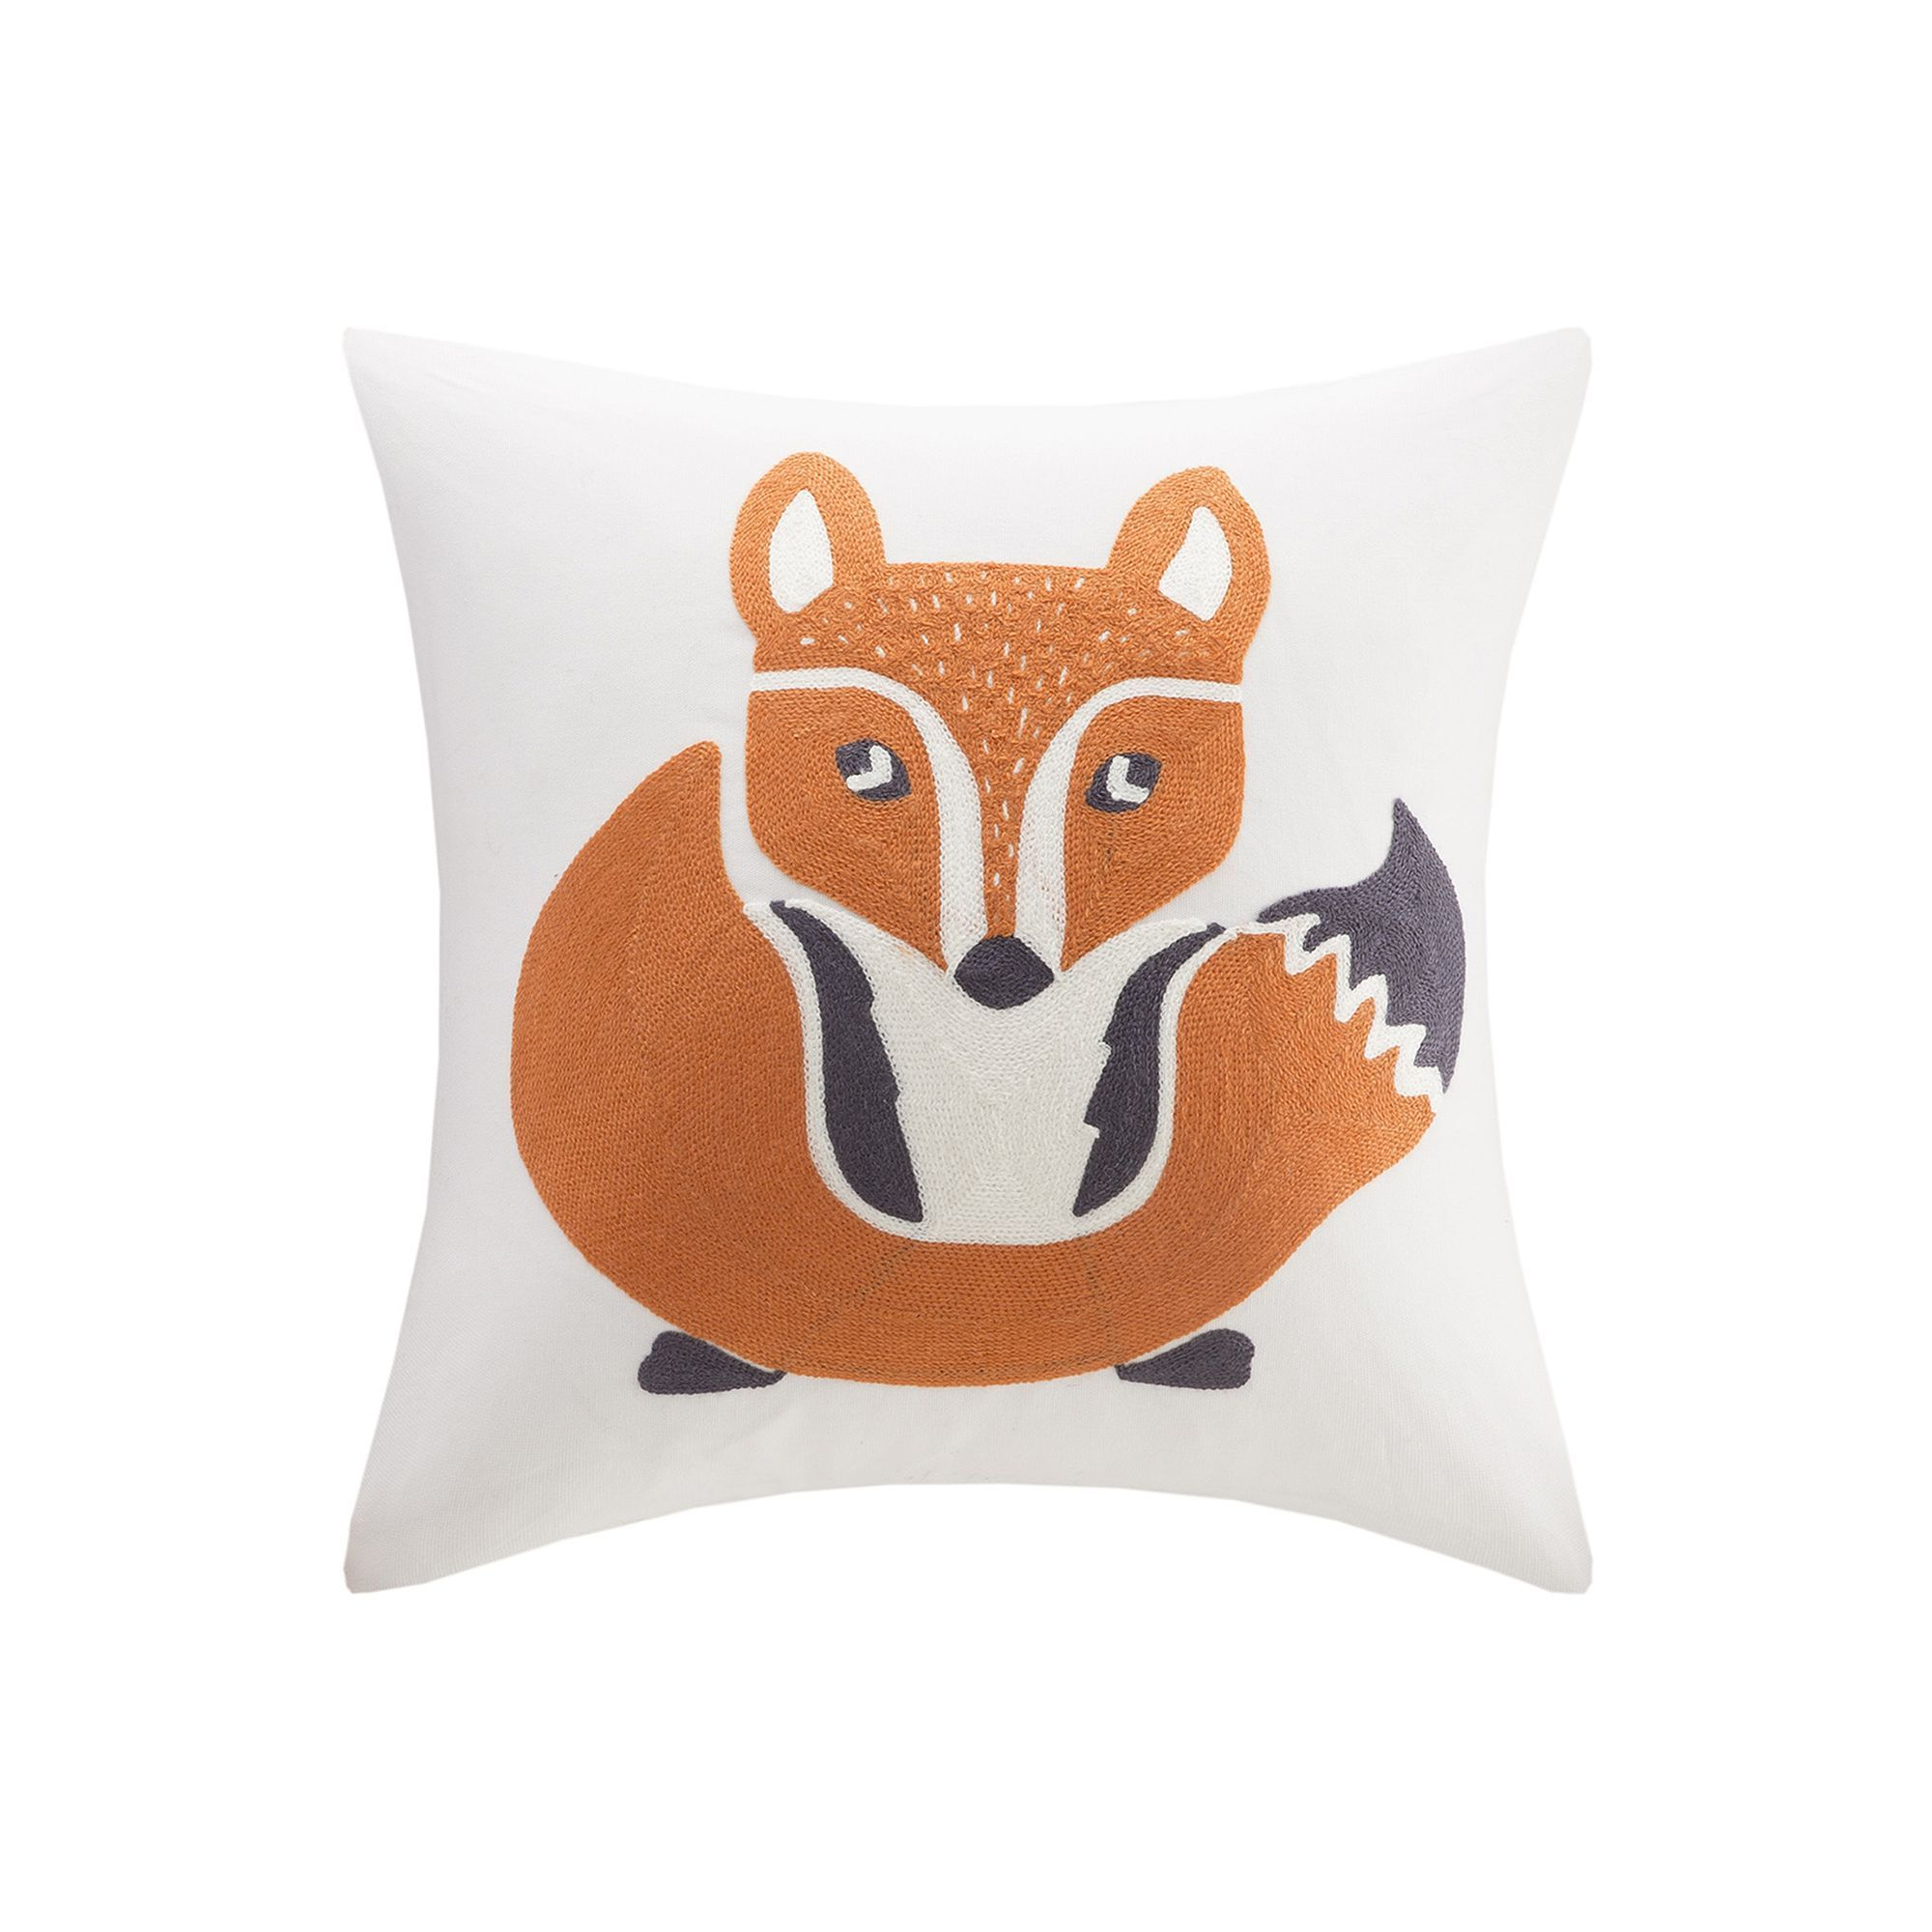 INK IVY Kids Ink ivy Kids Foxy Embroidered Square Throw Pillow ...